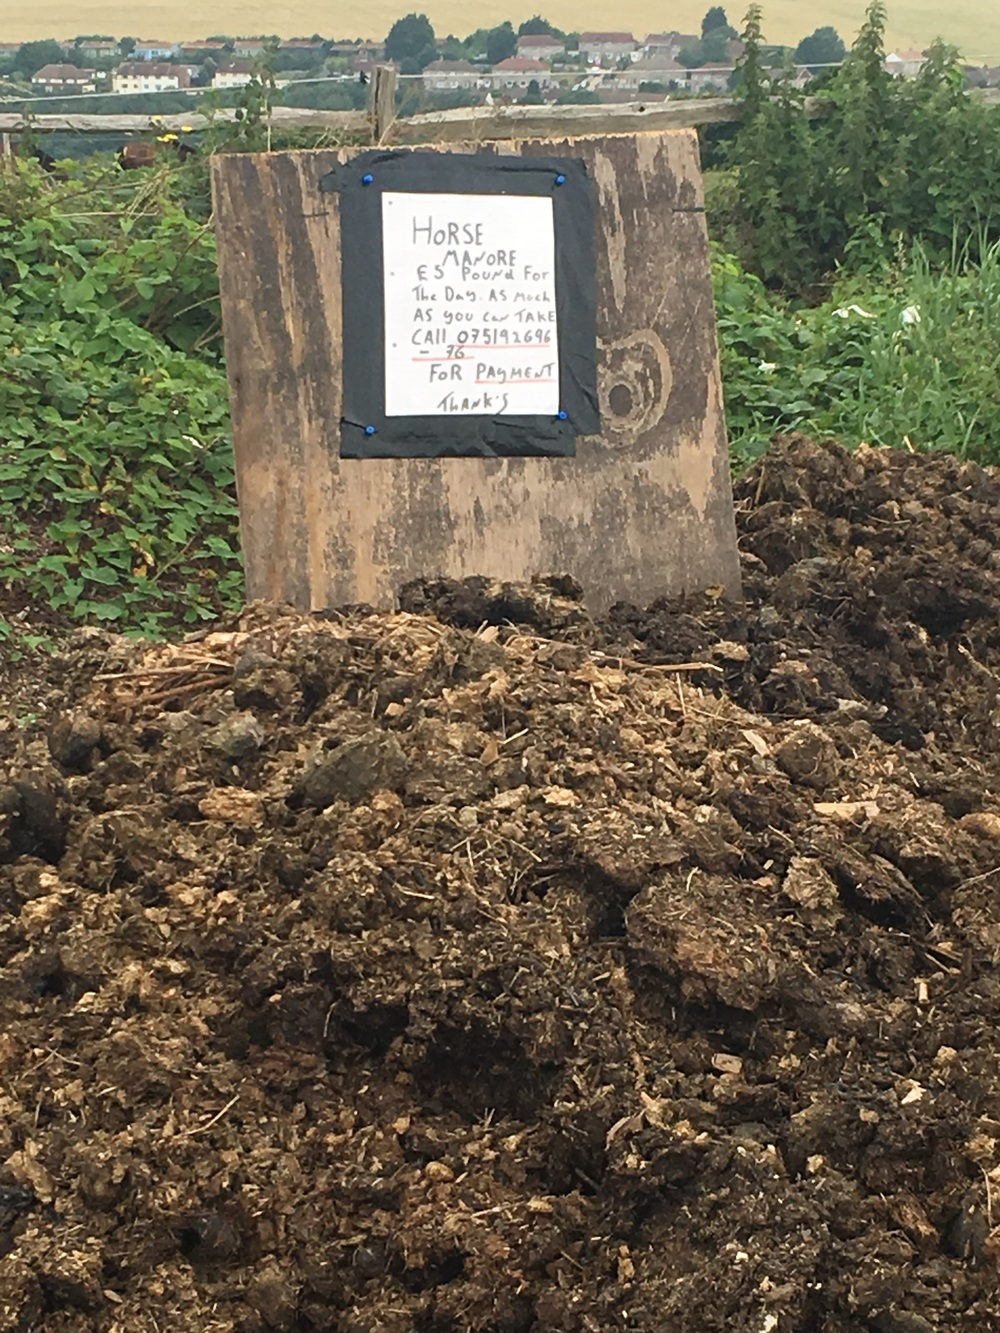 Horse manure for sale - as found on my walk today